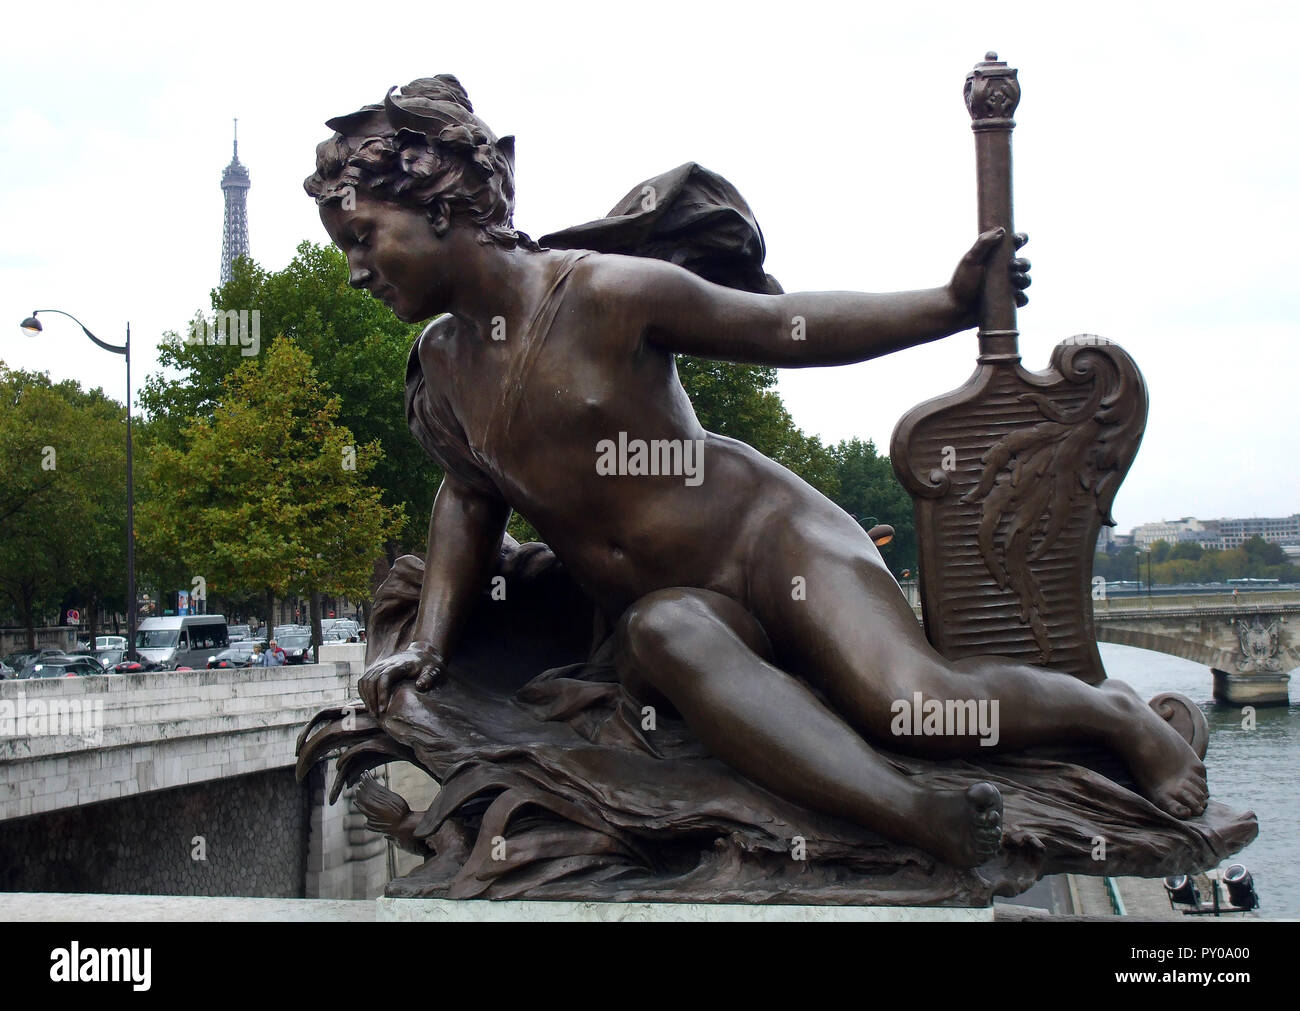 A bronze angelic statue on one of the bridges that cross the River Seine in Paris. The Eiffel tower can be seen in the background. - Stock Image